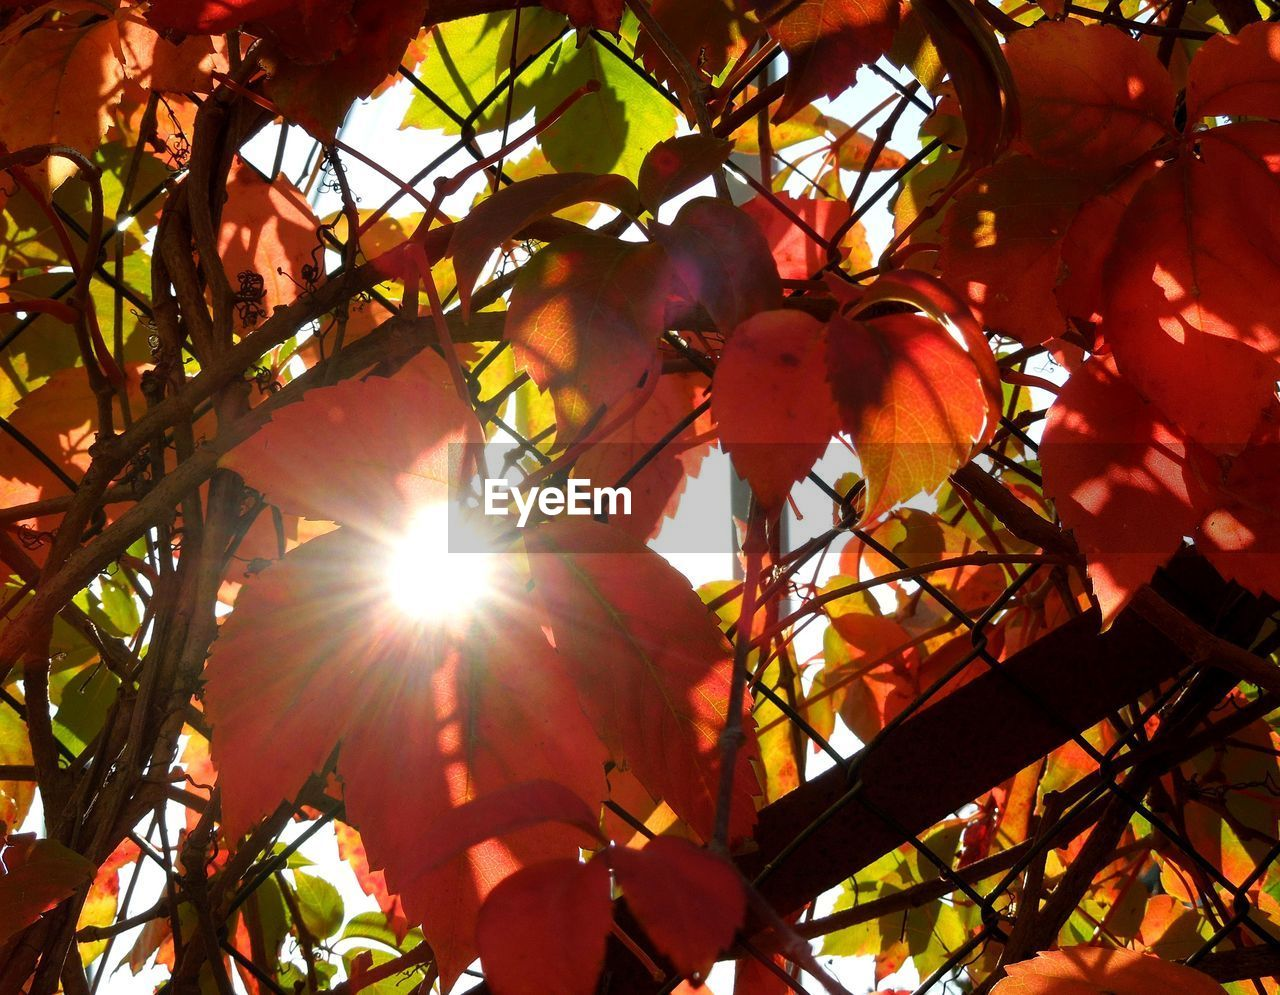 sunbeam, sunlight, sun, lens flare, growth, tree, nature, low angle view, fruit, beauty in nature, no people, outdoors, day, leaf, branch, freshness